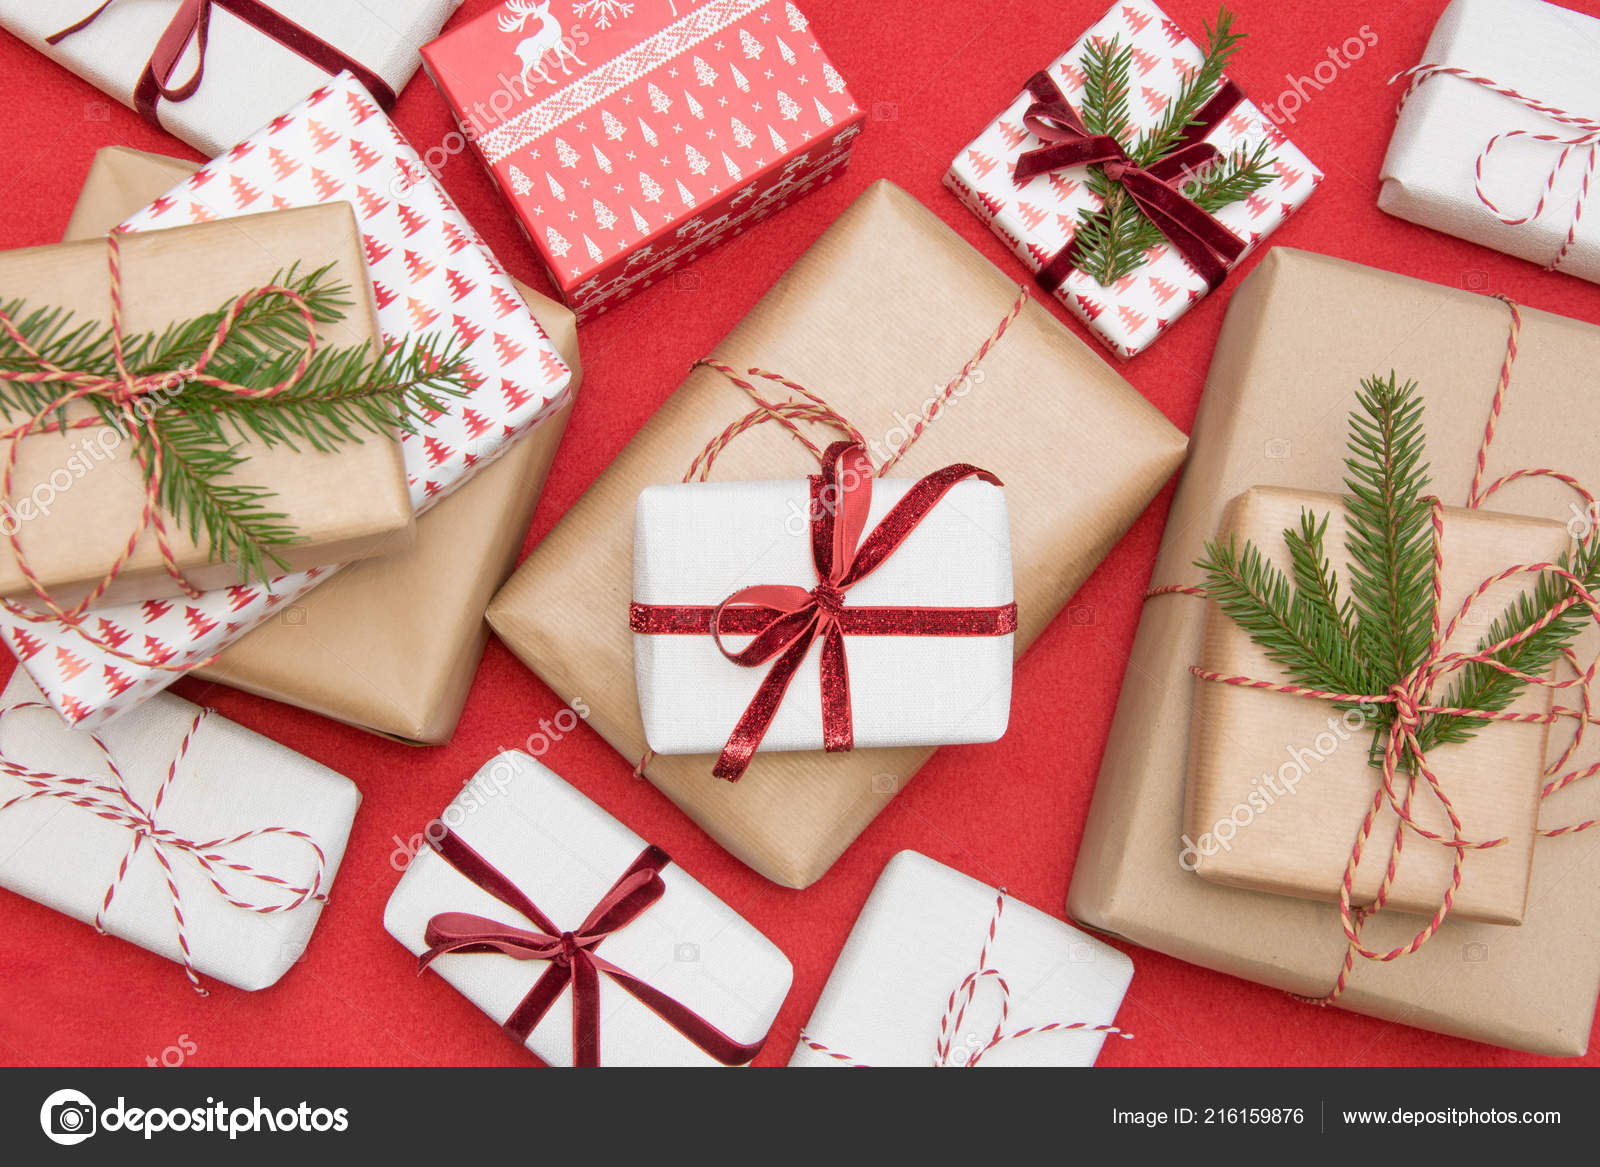 Christmas gift box wrapped in ornament paper and decorative red rope